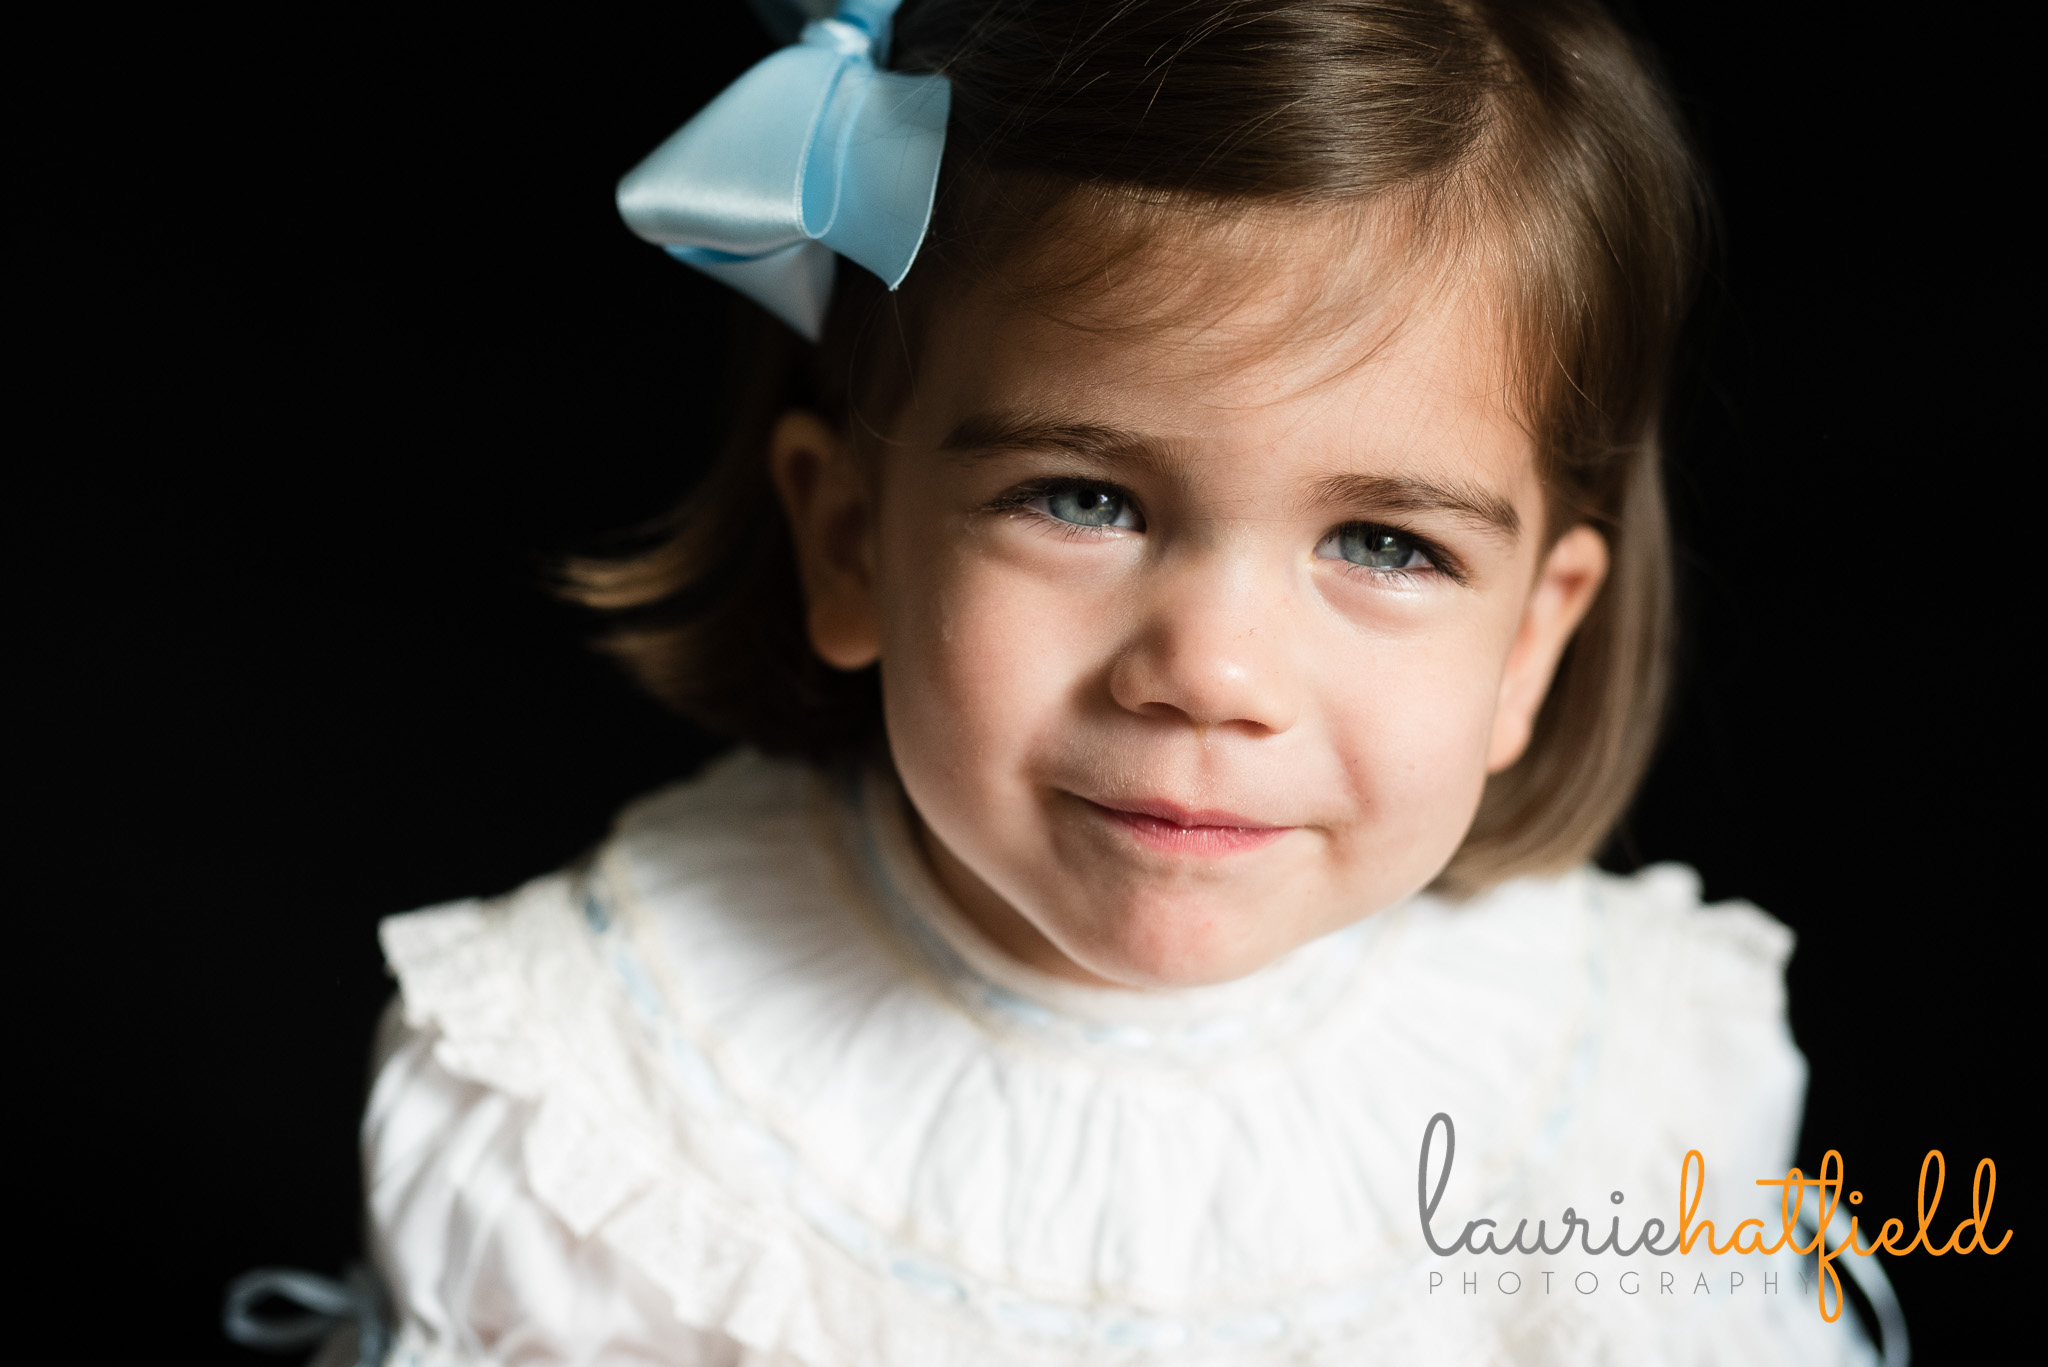 2 year old girl with blue eyes and white dress | Mobile AL preschool photography